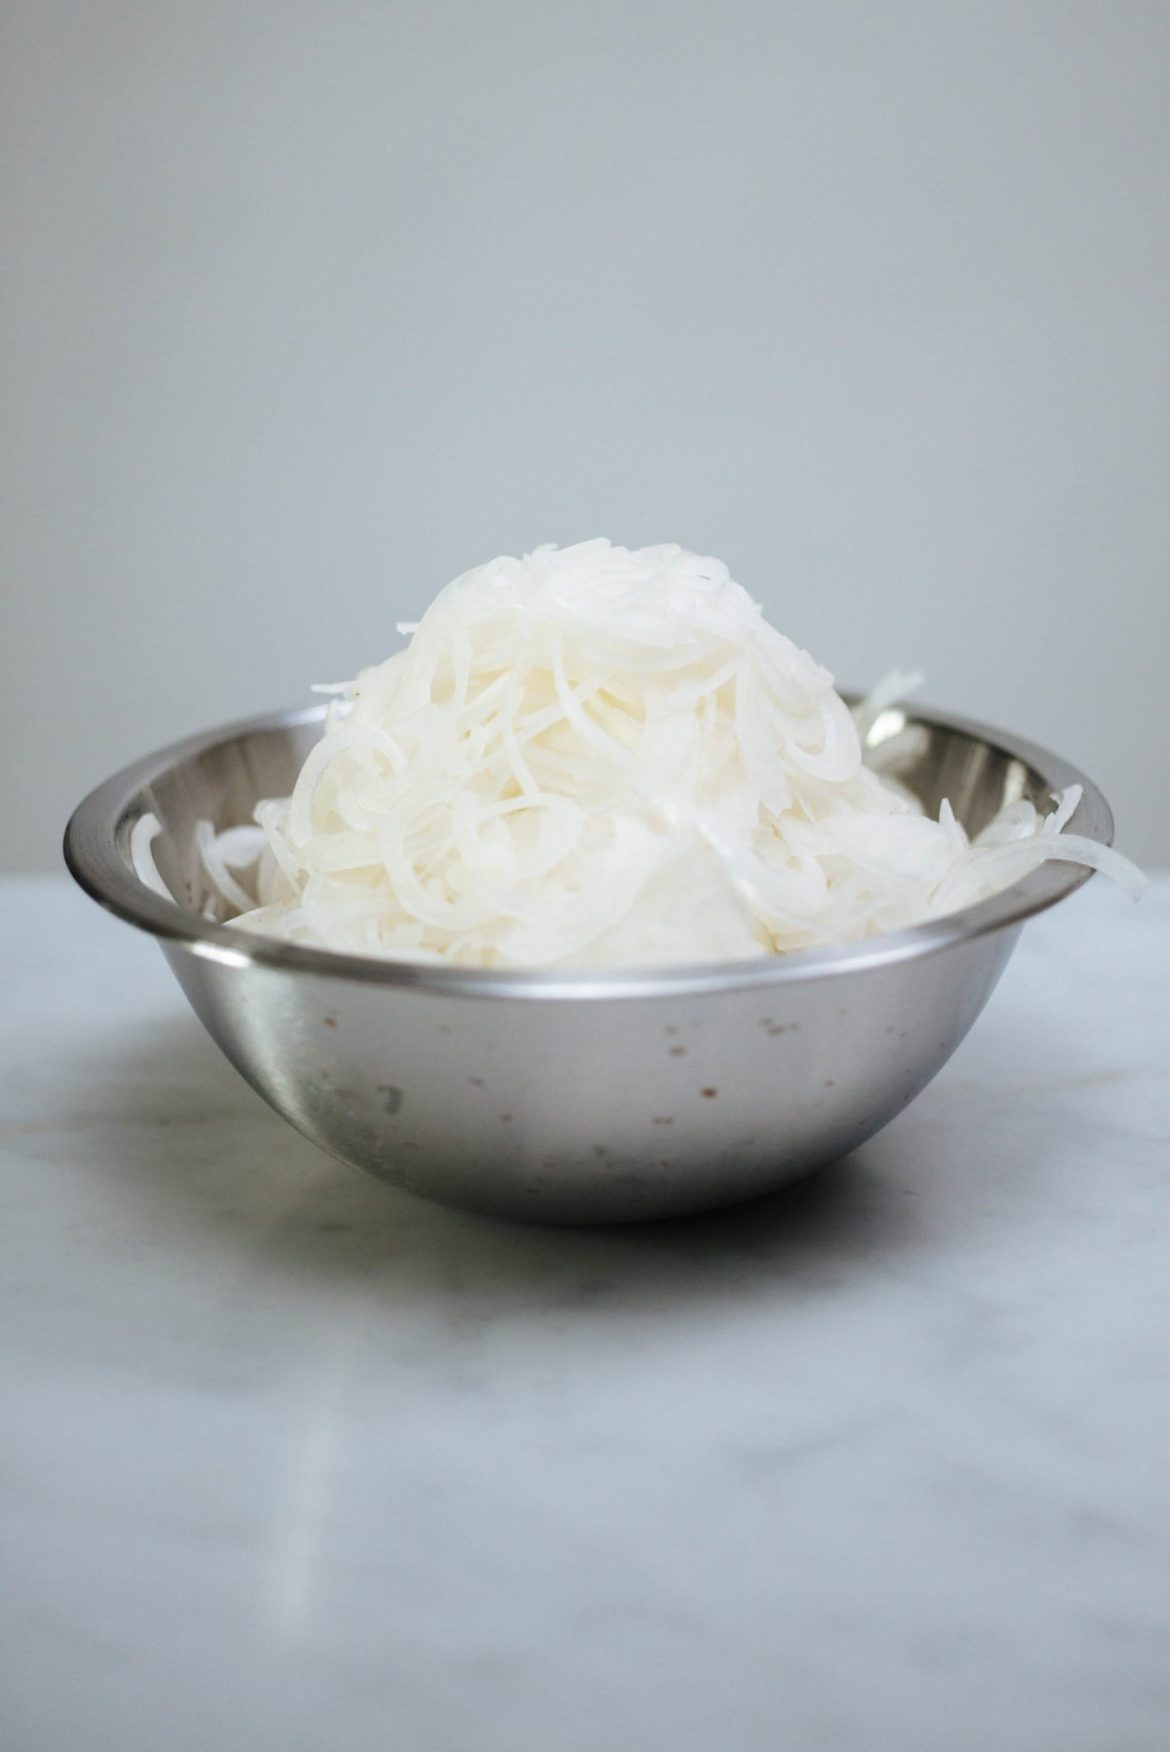 A bowl full of sliced onions for french onion soup